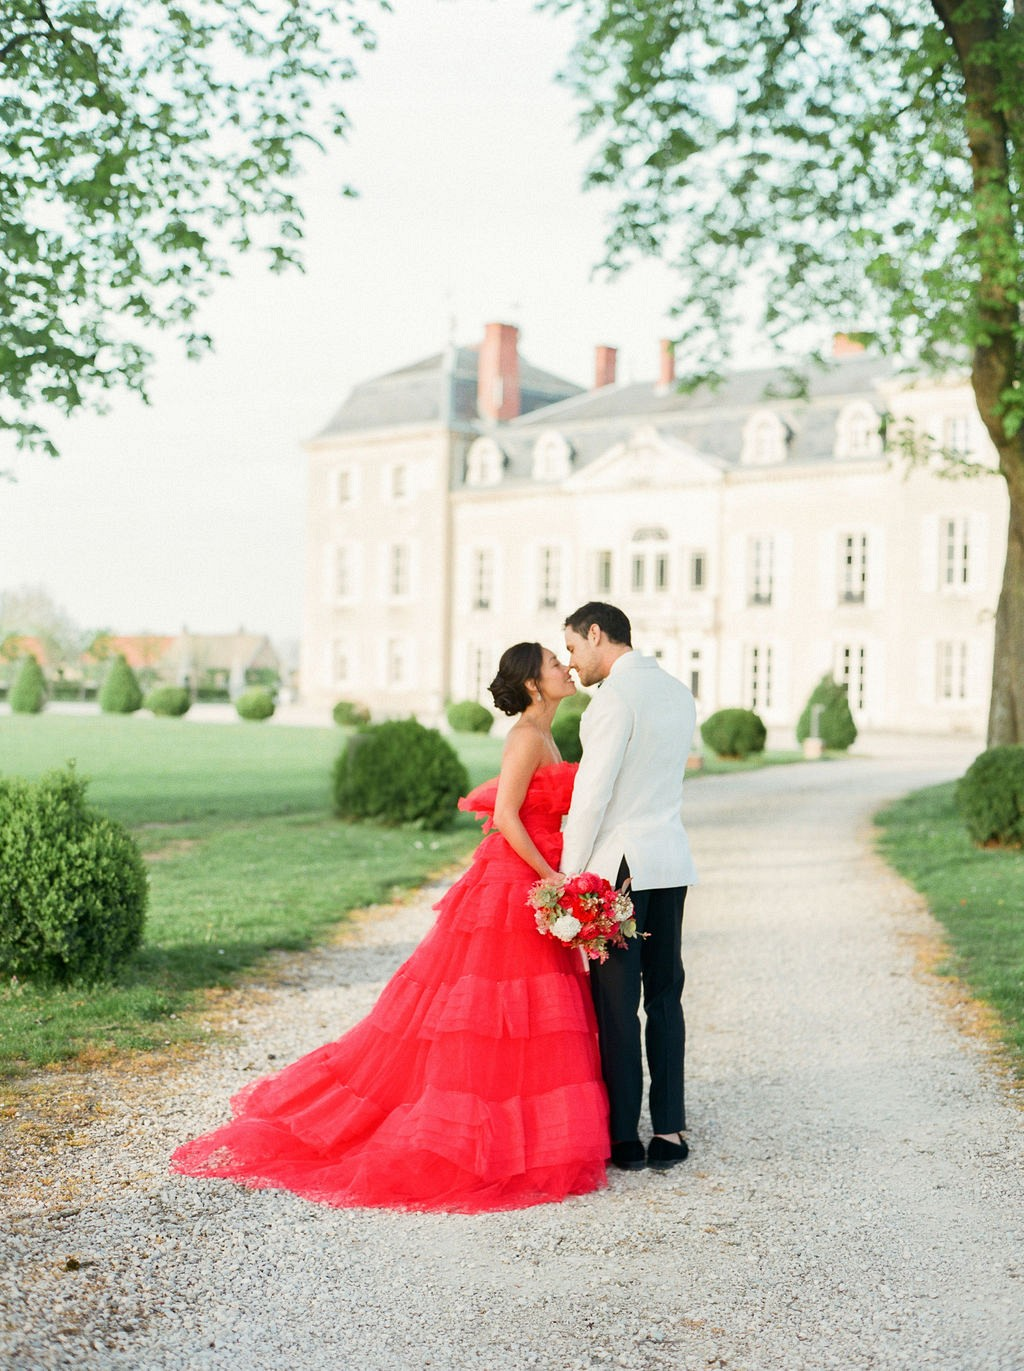 Pops of Red in This Wedding Inspiration at a Chateau